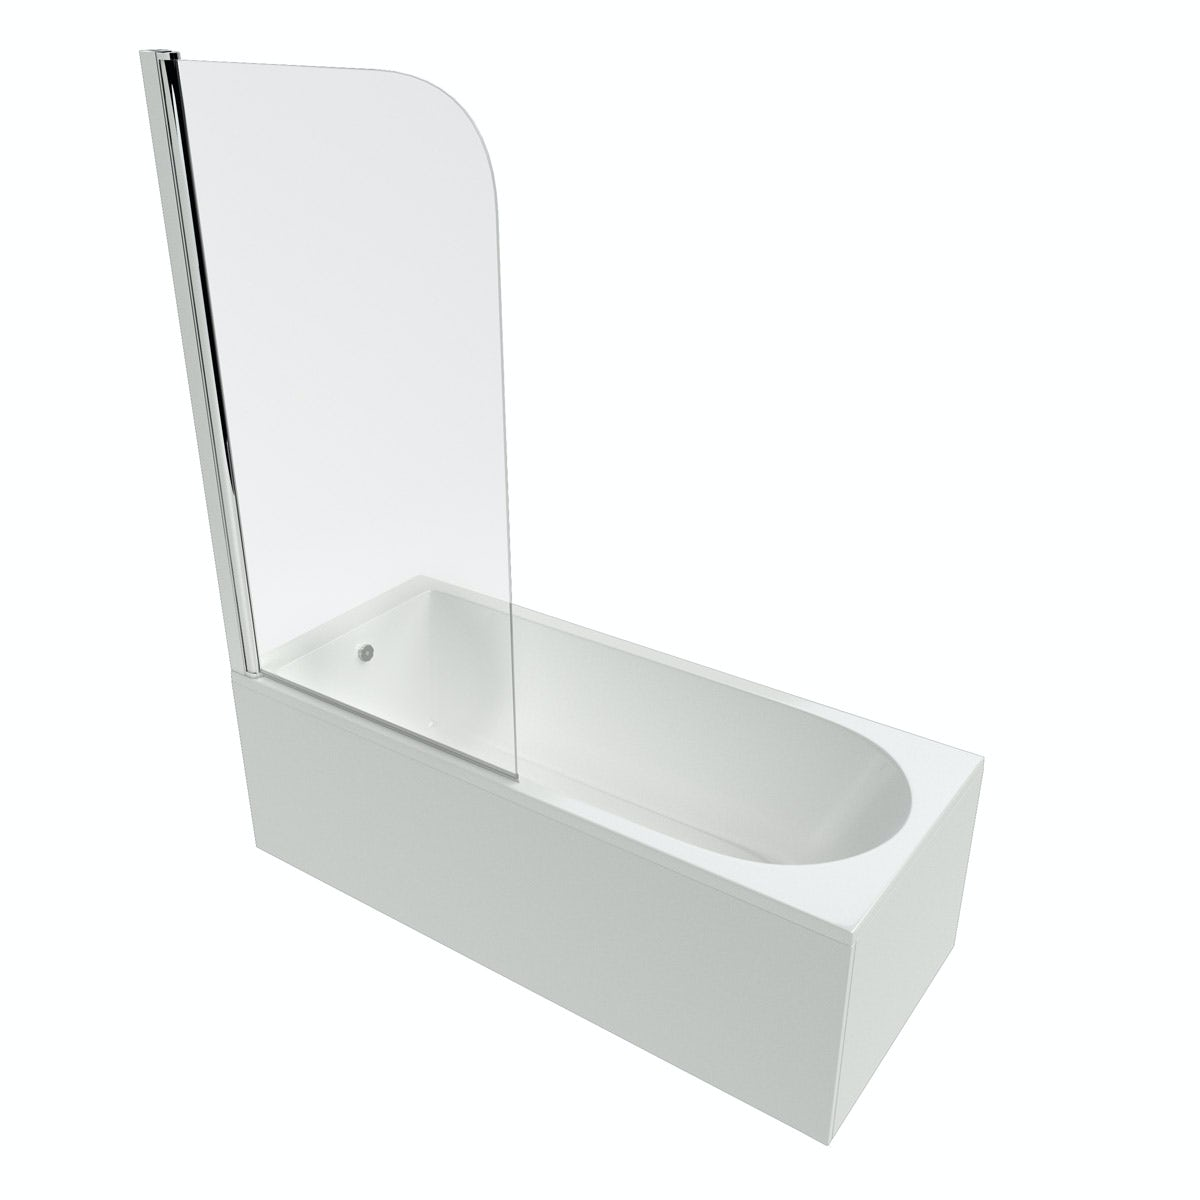 Ideal Standard Tesi single ended Idealform Plus+ straight bath and angle screen 1700 x 700